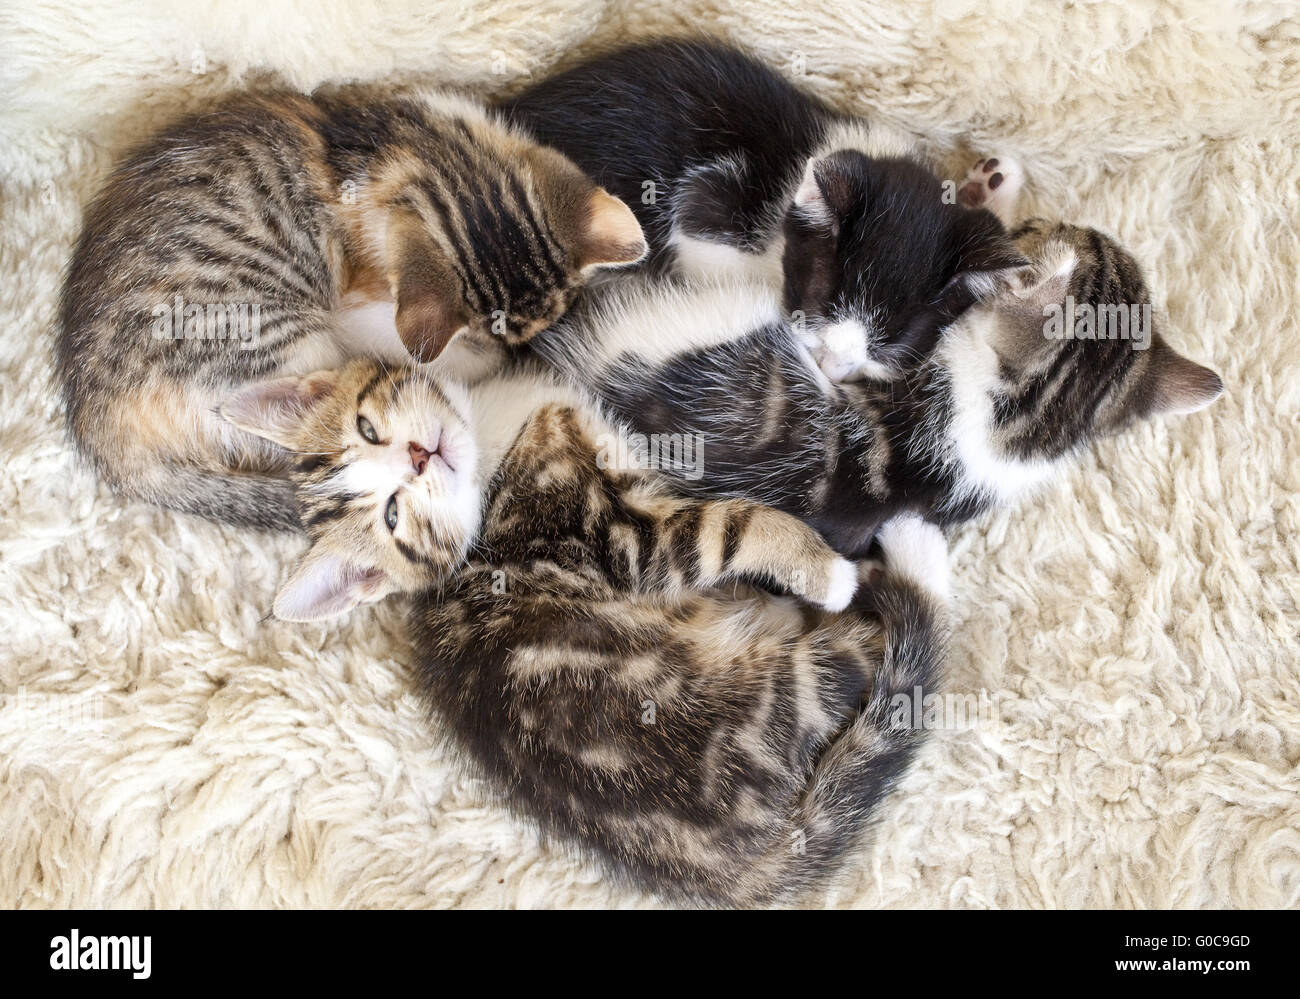 four tired kittens cuddling up - Stock Image